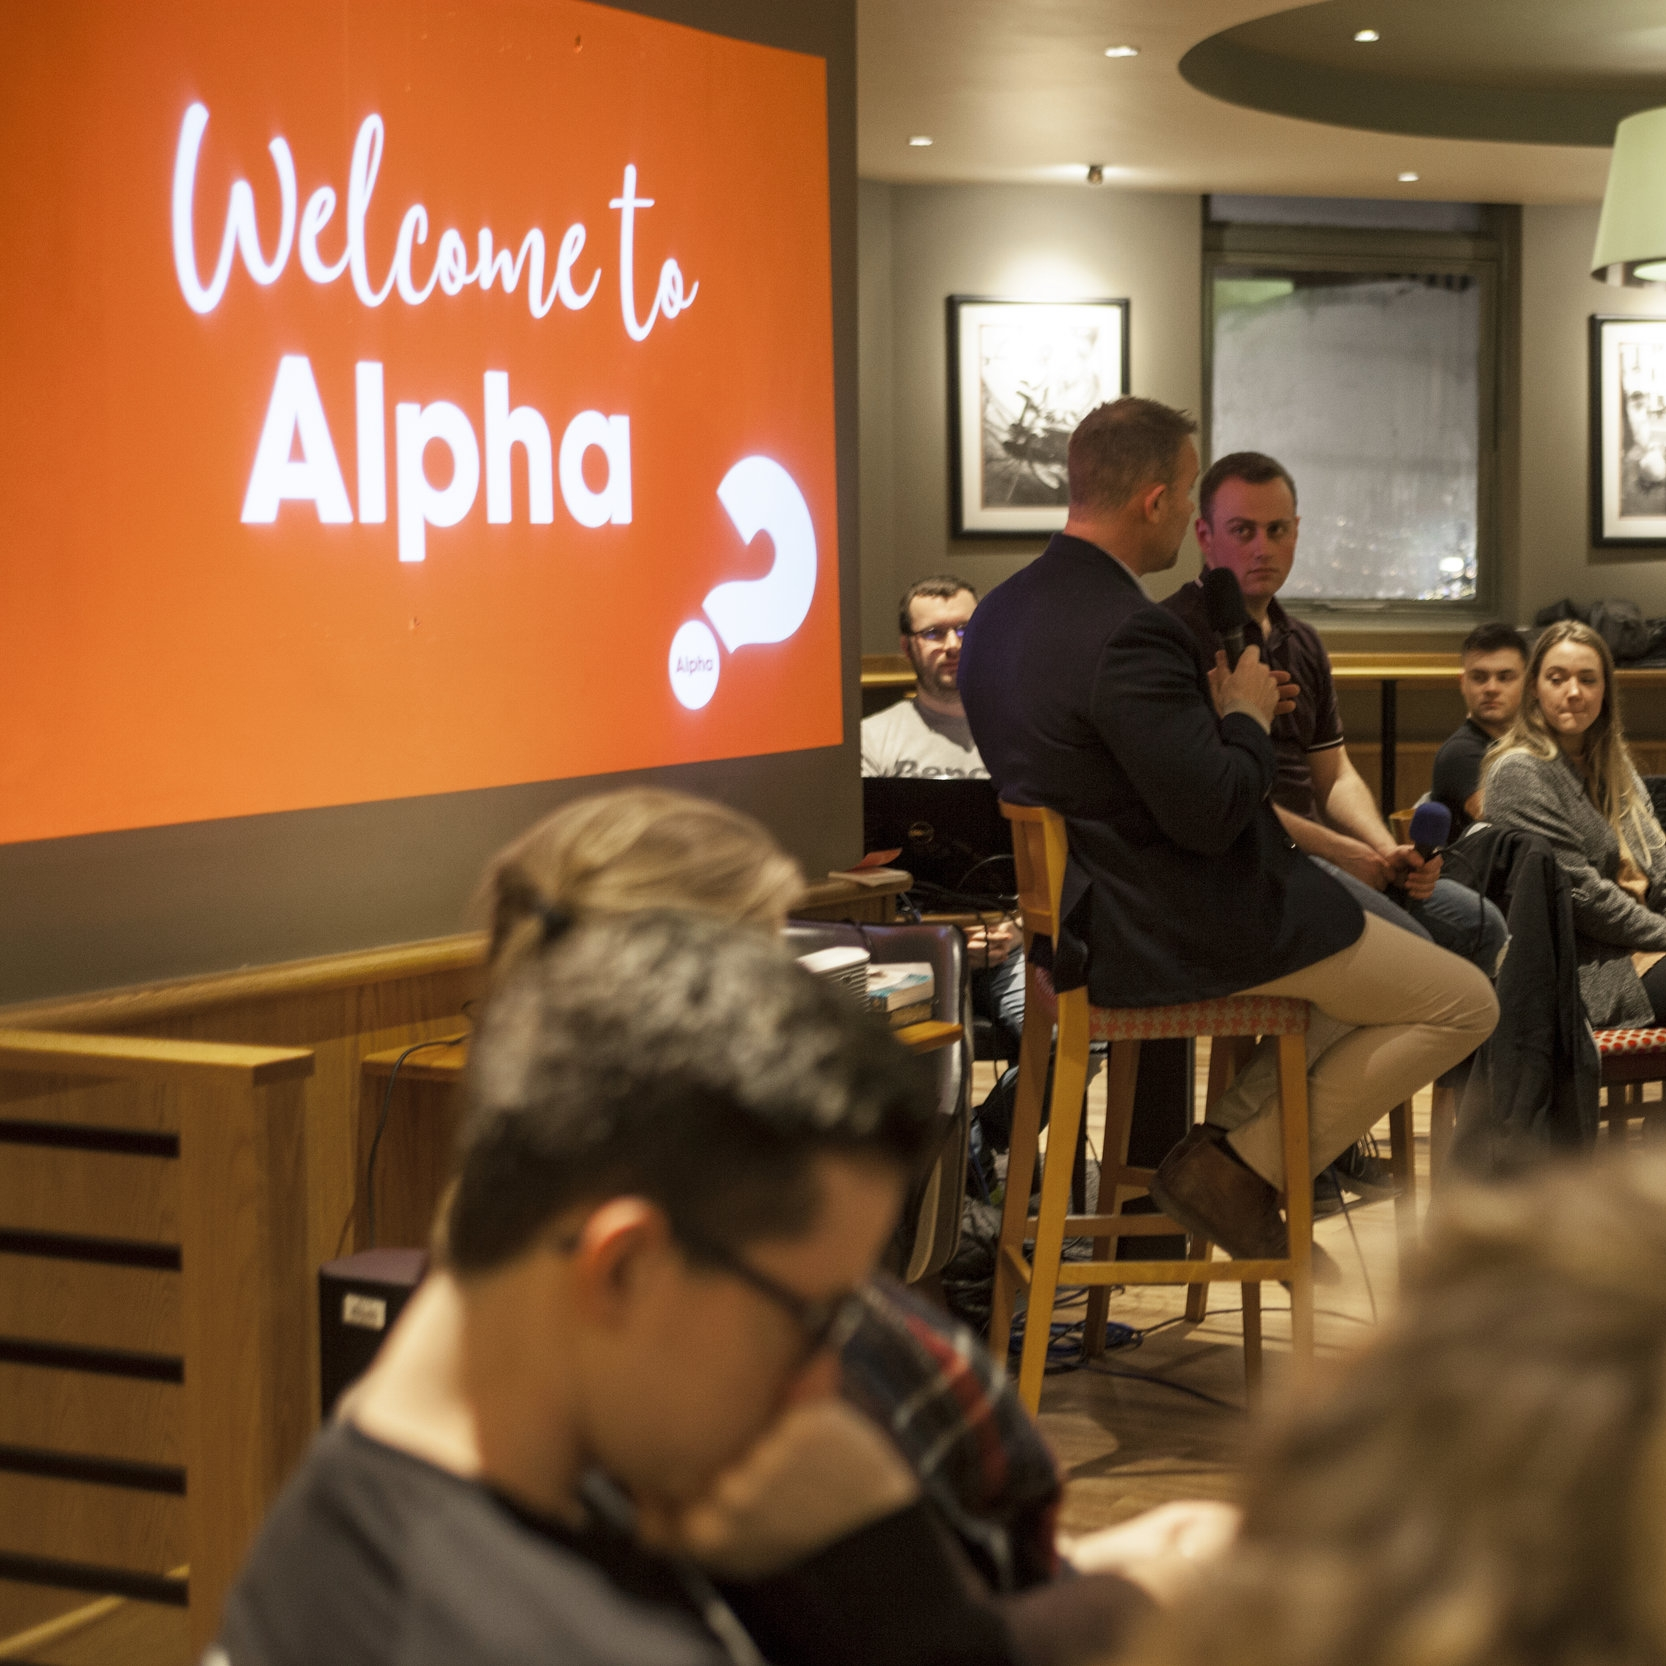 Try Alpha? - Everyone has questions and Alpha is a great place to find out more.More about Alpha